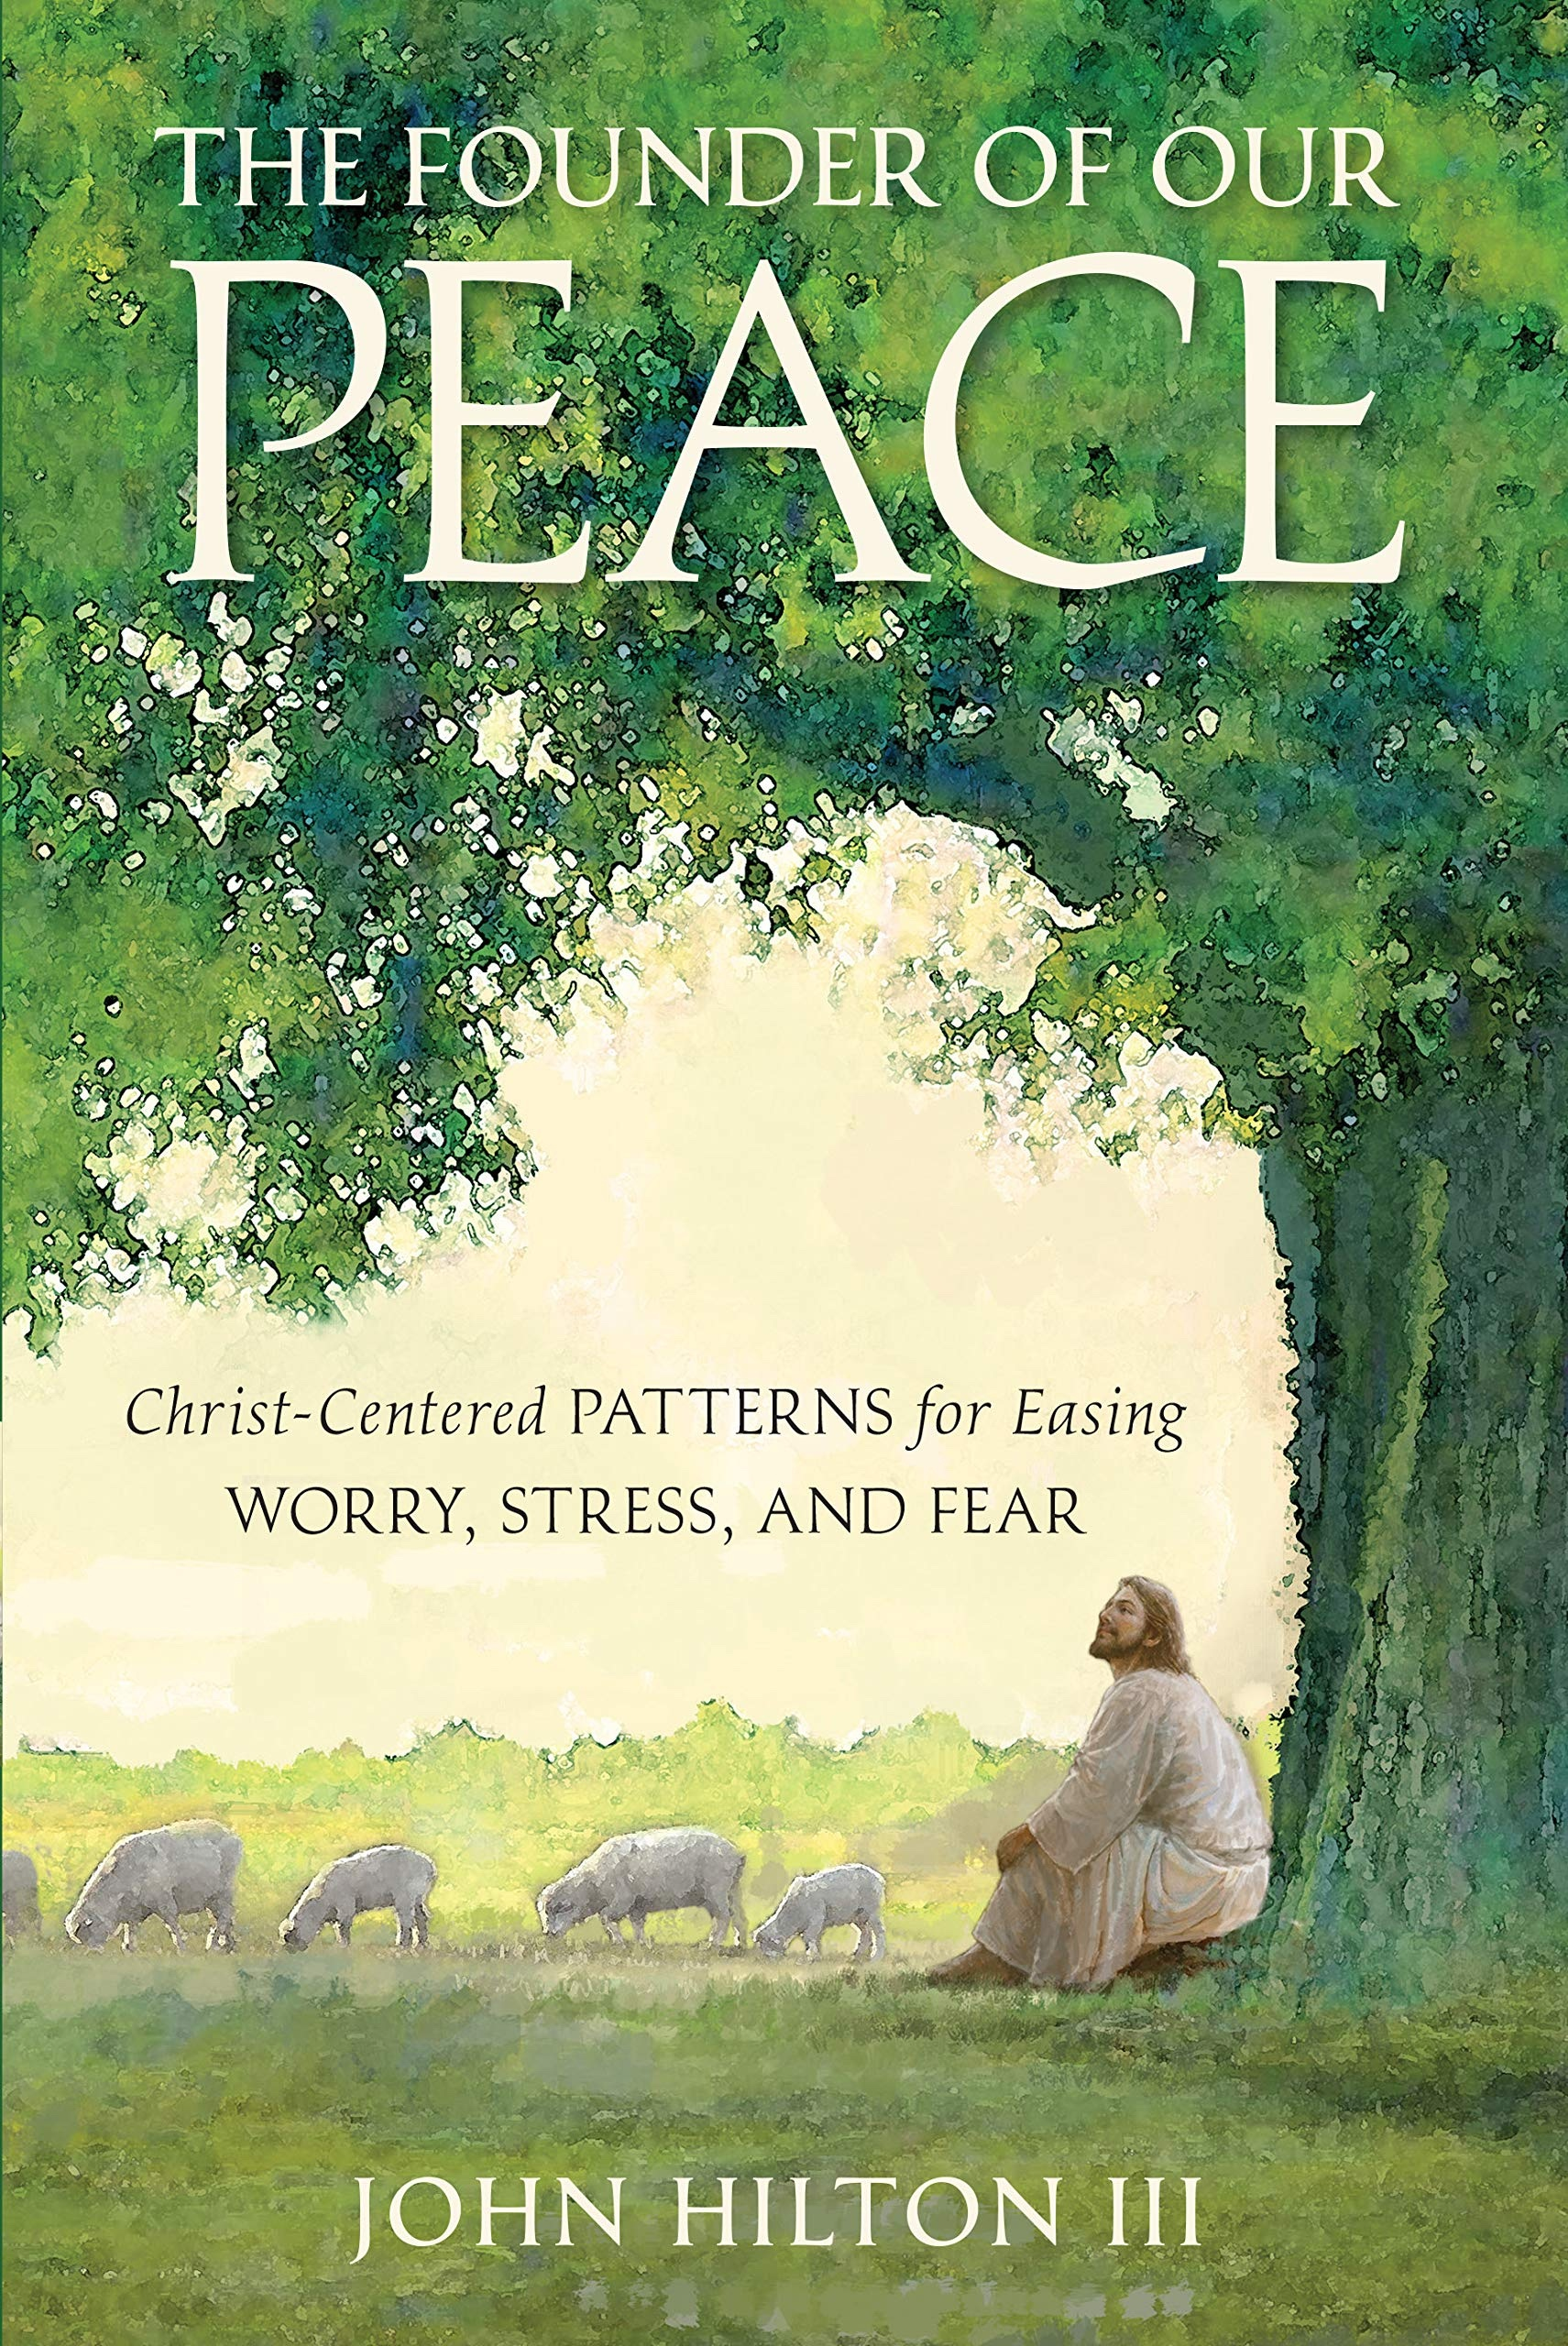 Image for The Founder of Our Peace Christ-Centered Patterns for Easing Worry, Stress, and Fear